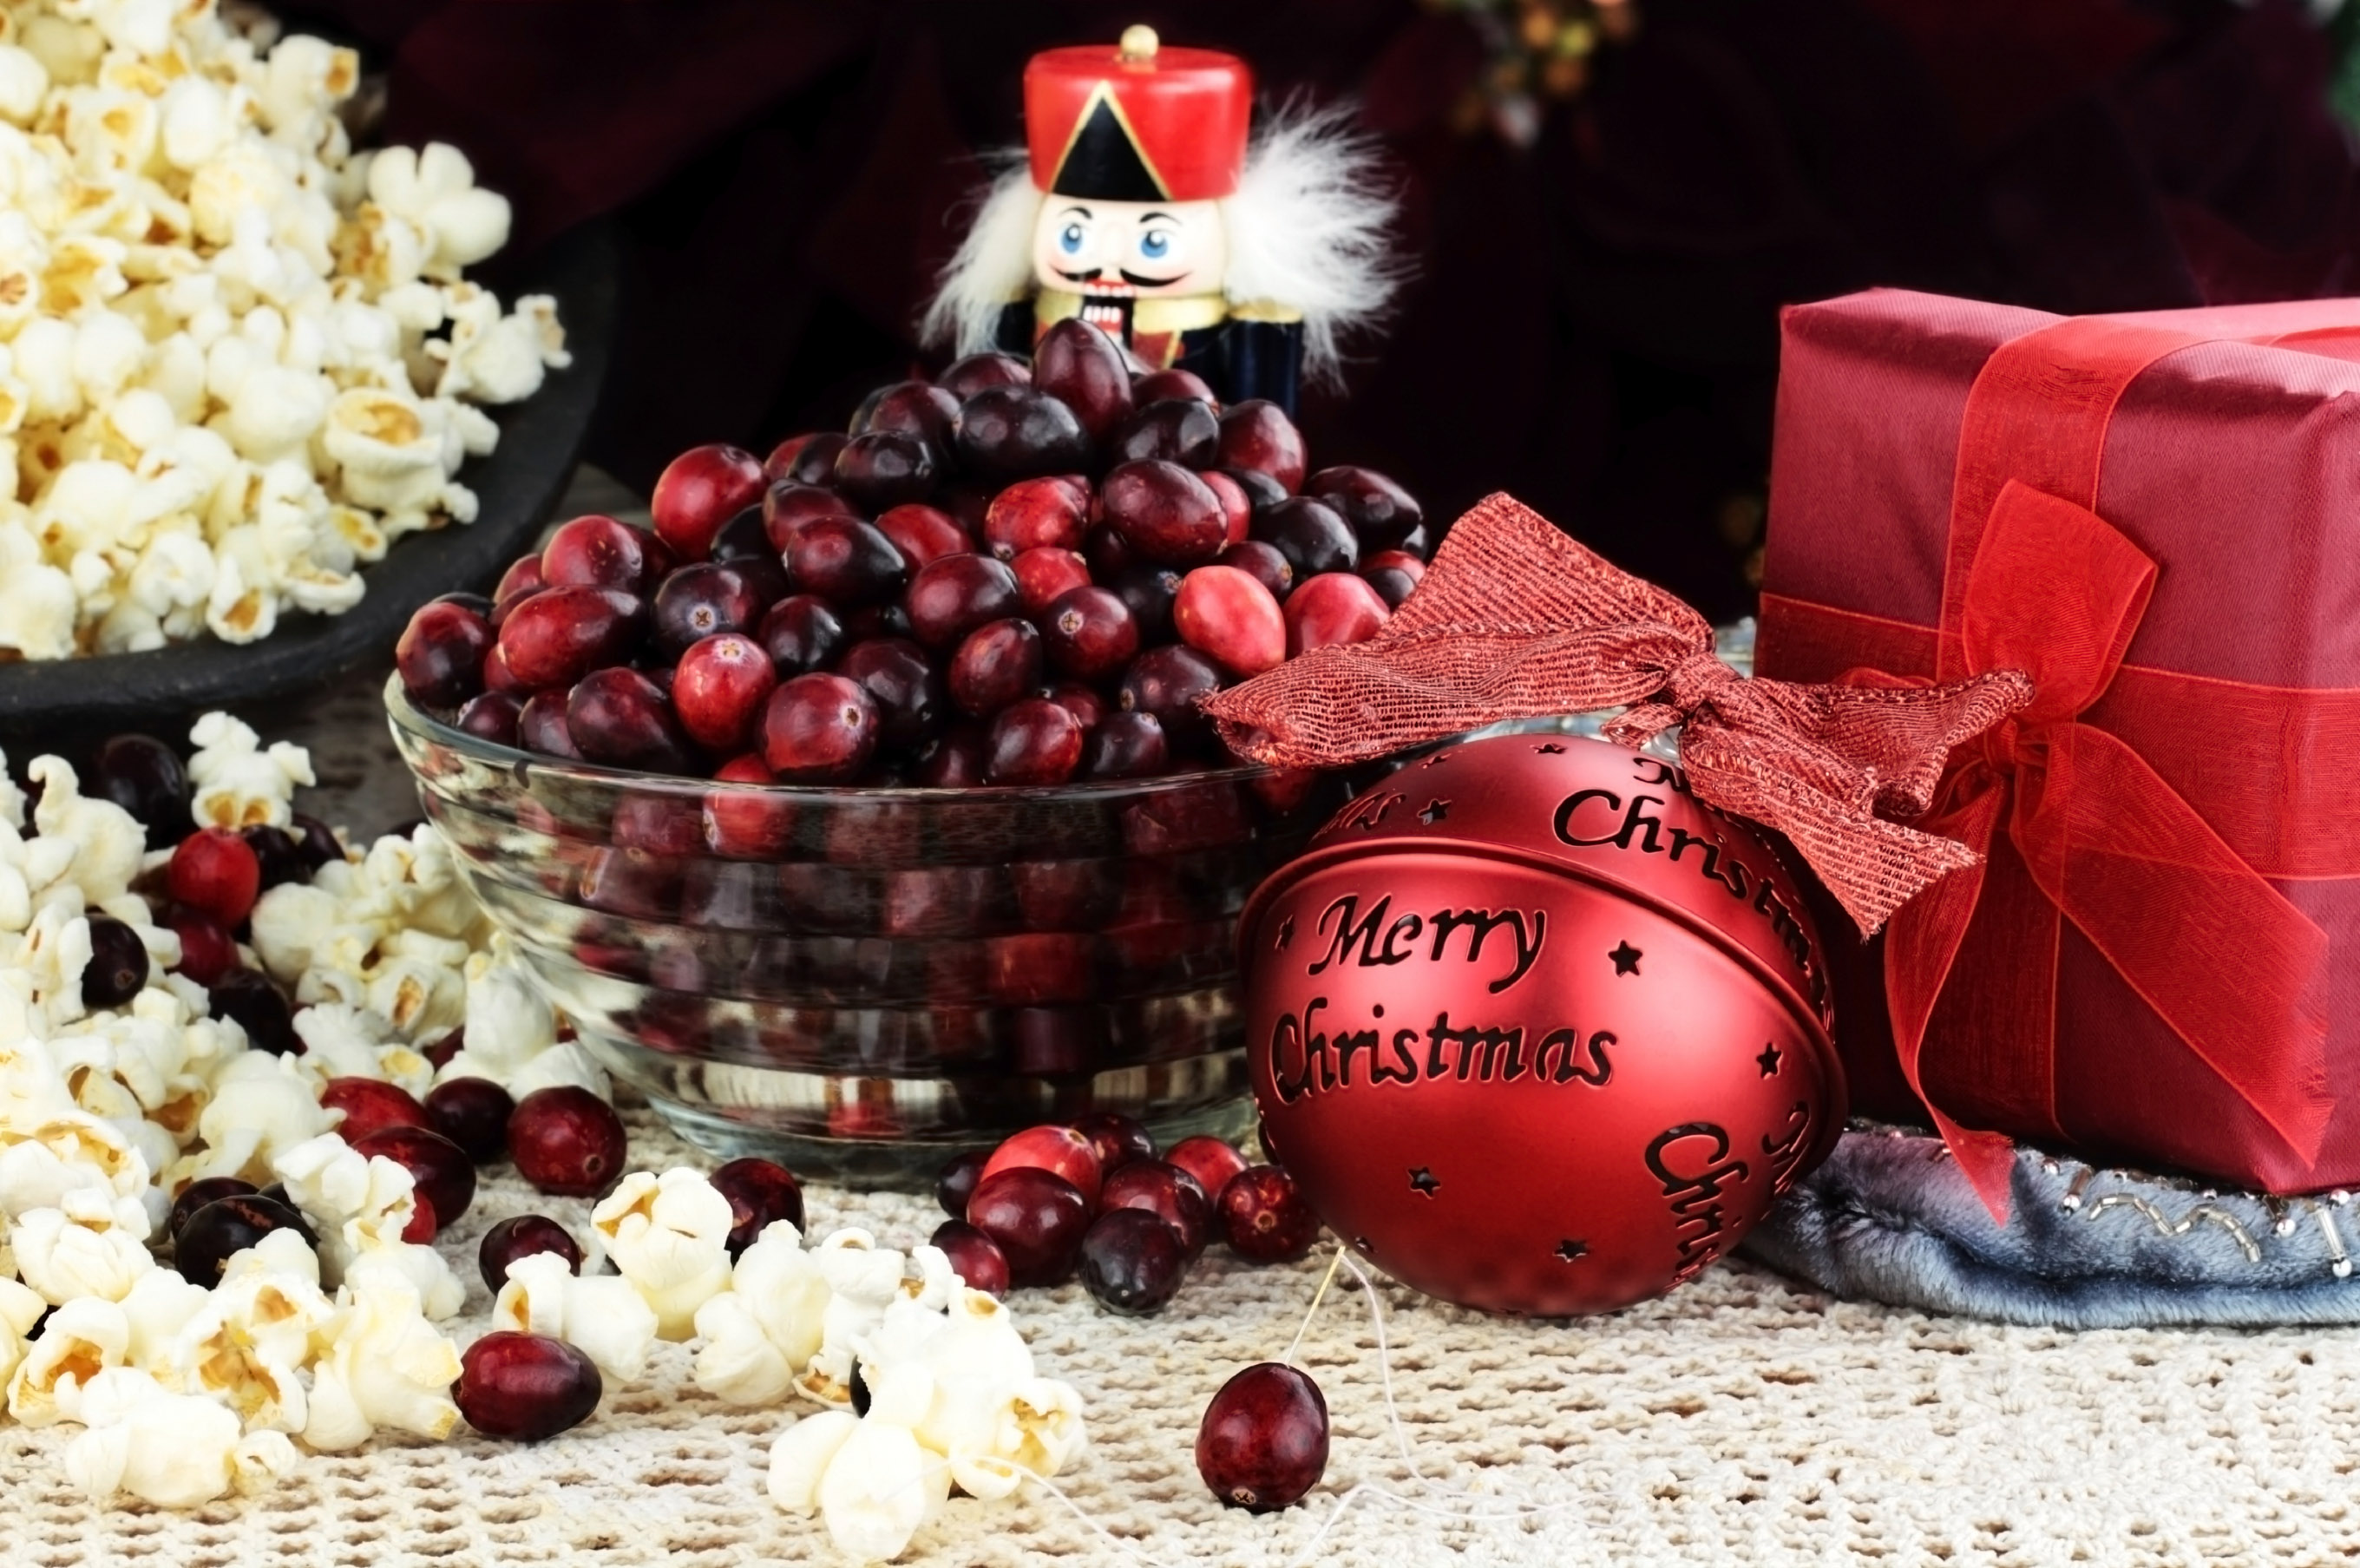 String of popcorn and cranberries with bowl of cranberries, popcorn, gift and ornaments in background. Shallow depth of field.